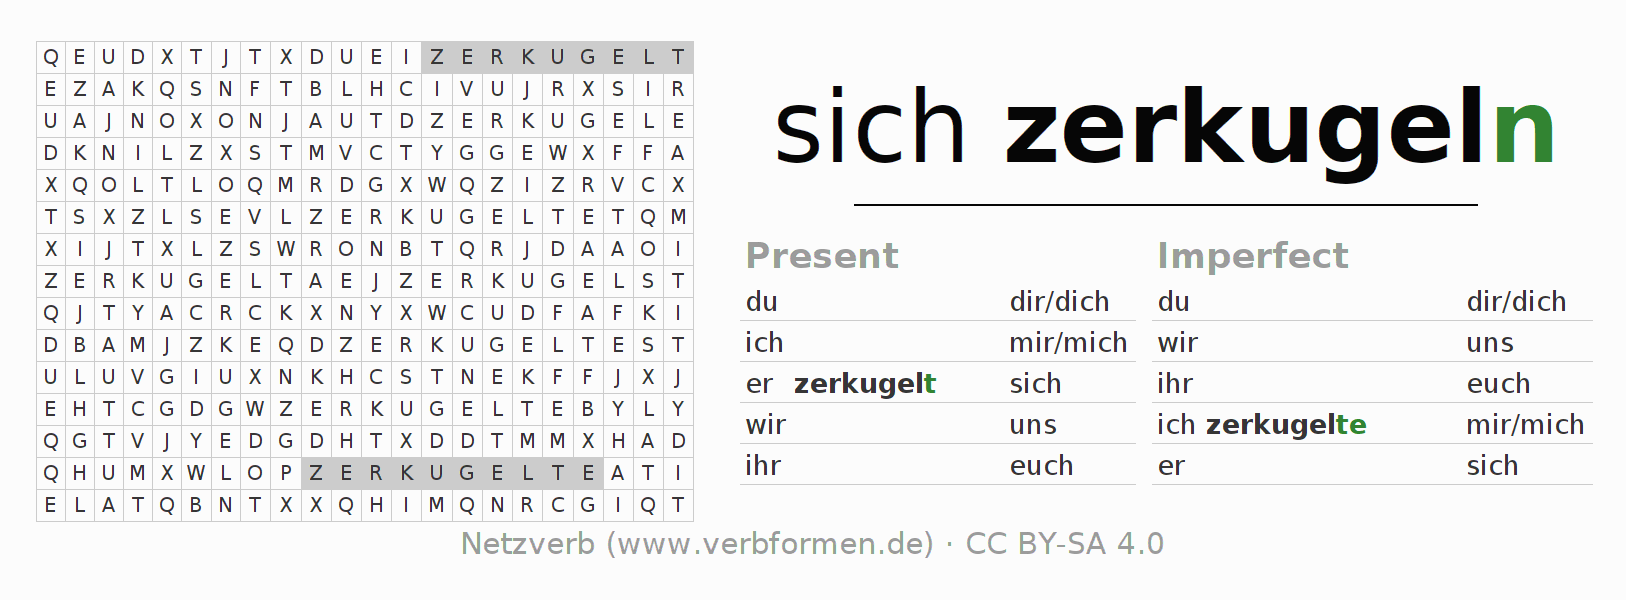 Word search puzzle for the conjugation of the verb sich zerkugeln